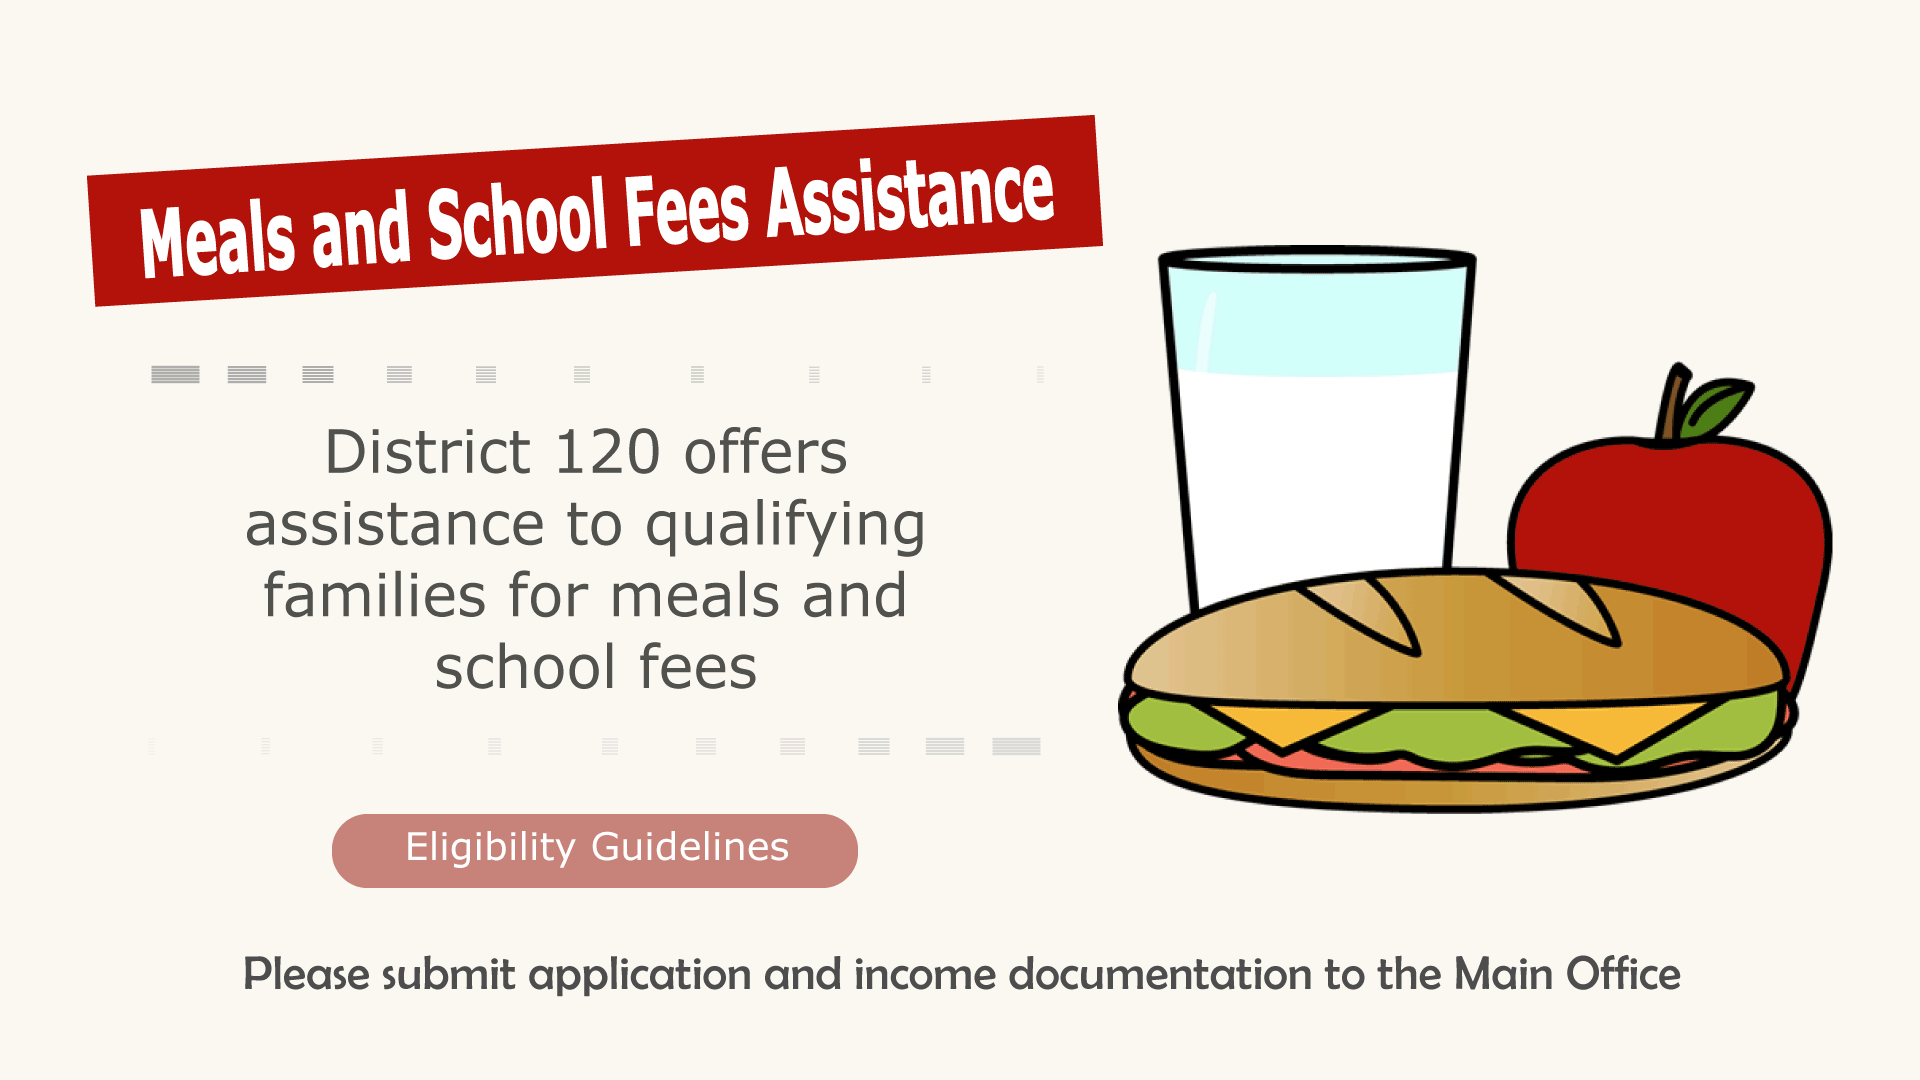 MEALS and SCHOOL FEES ASSISTANCE